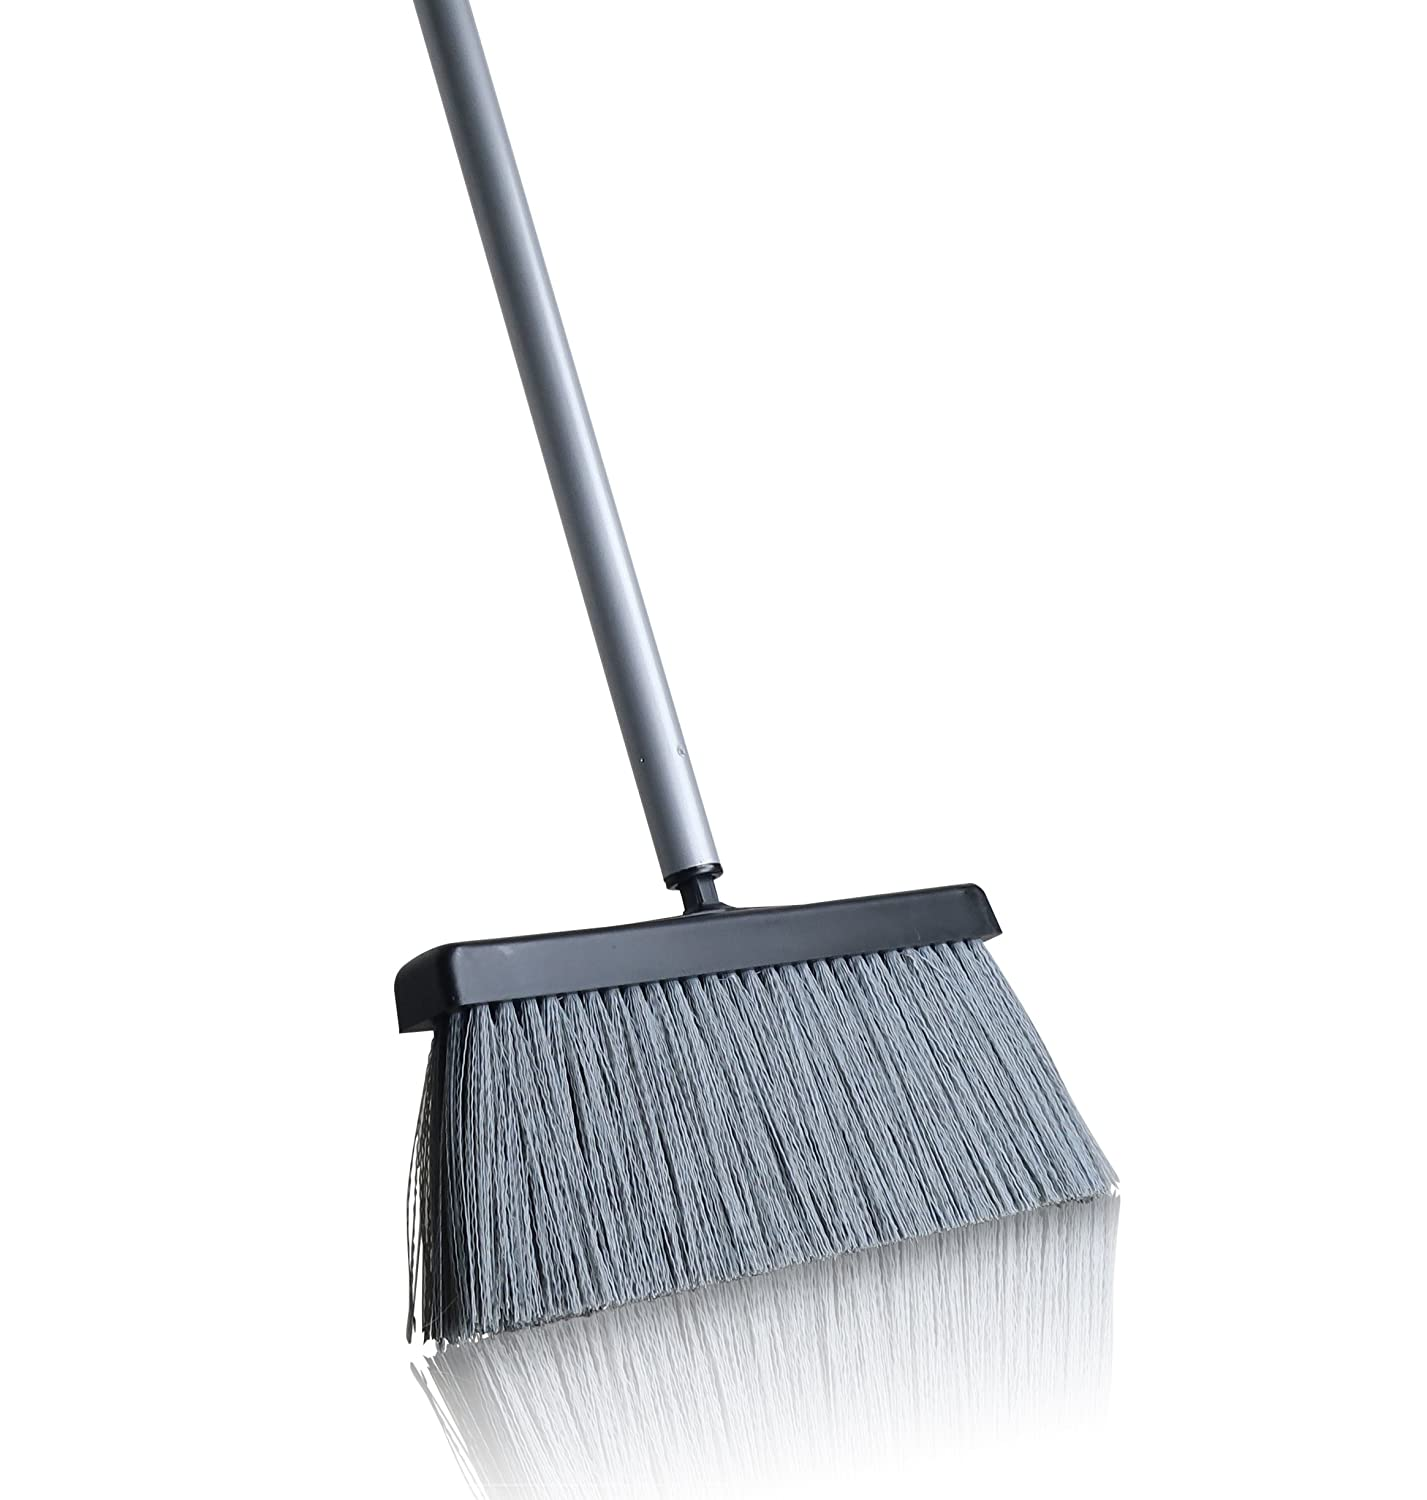 Fuller Brush Slender Broom Replacement Handle